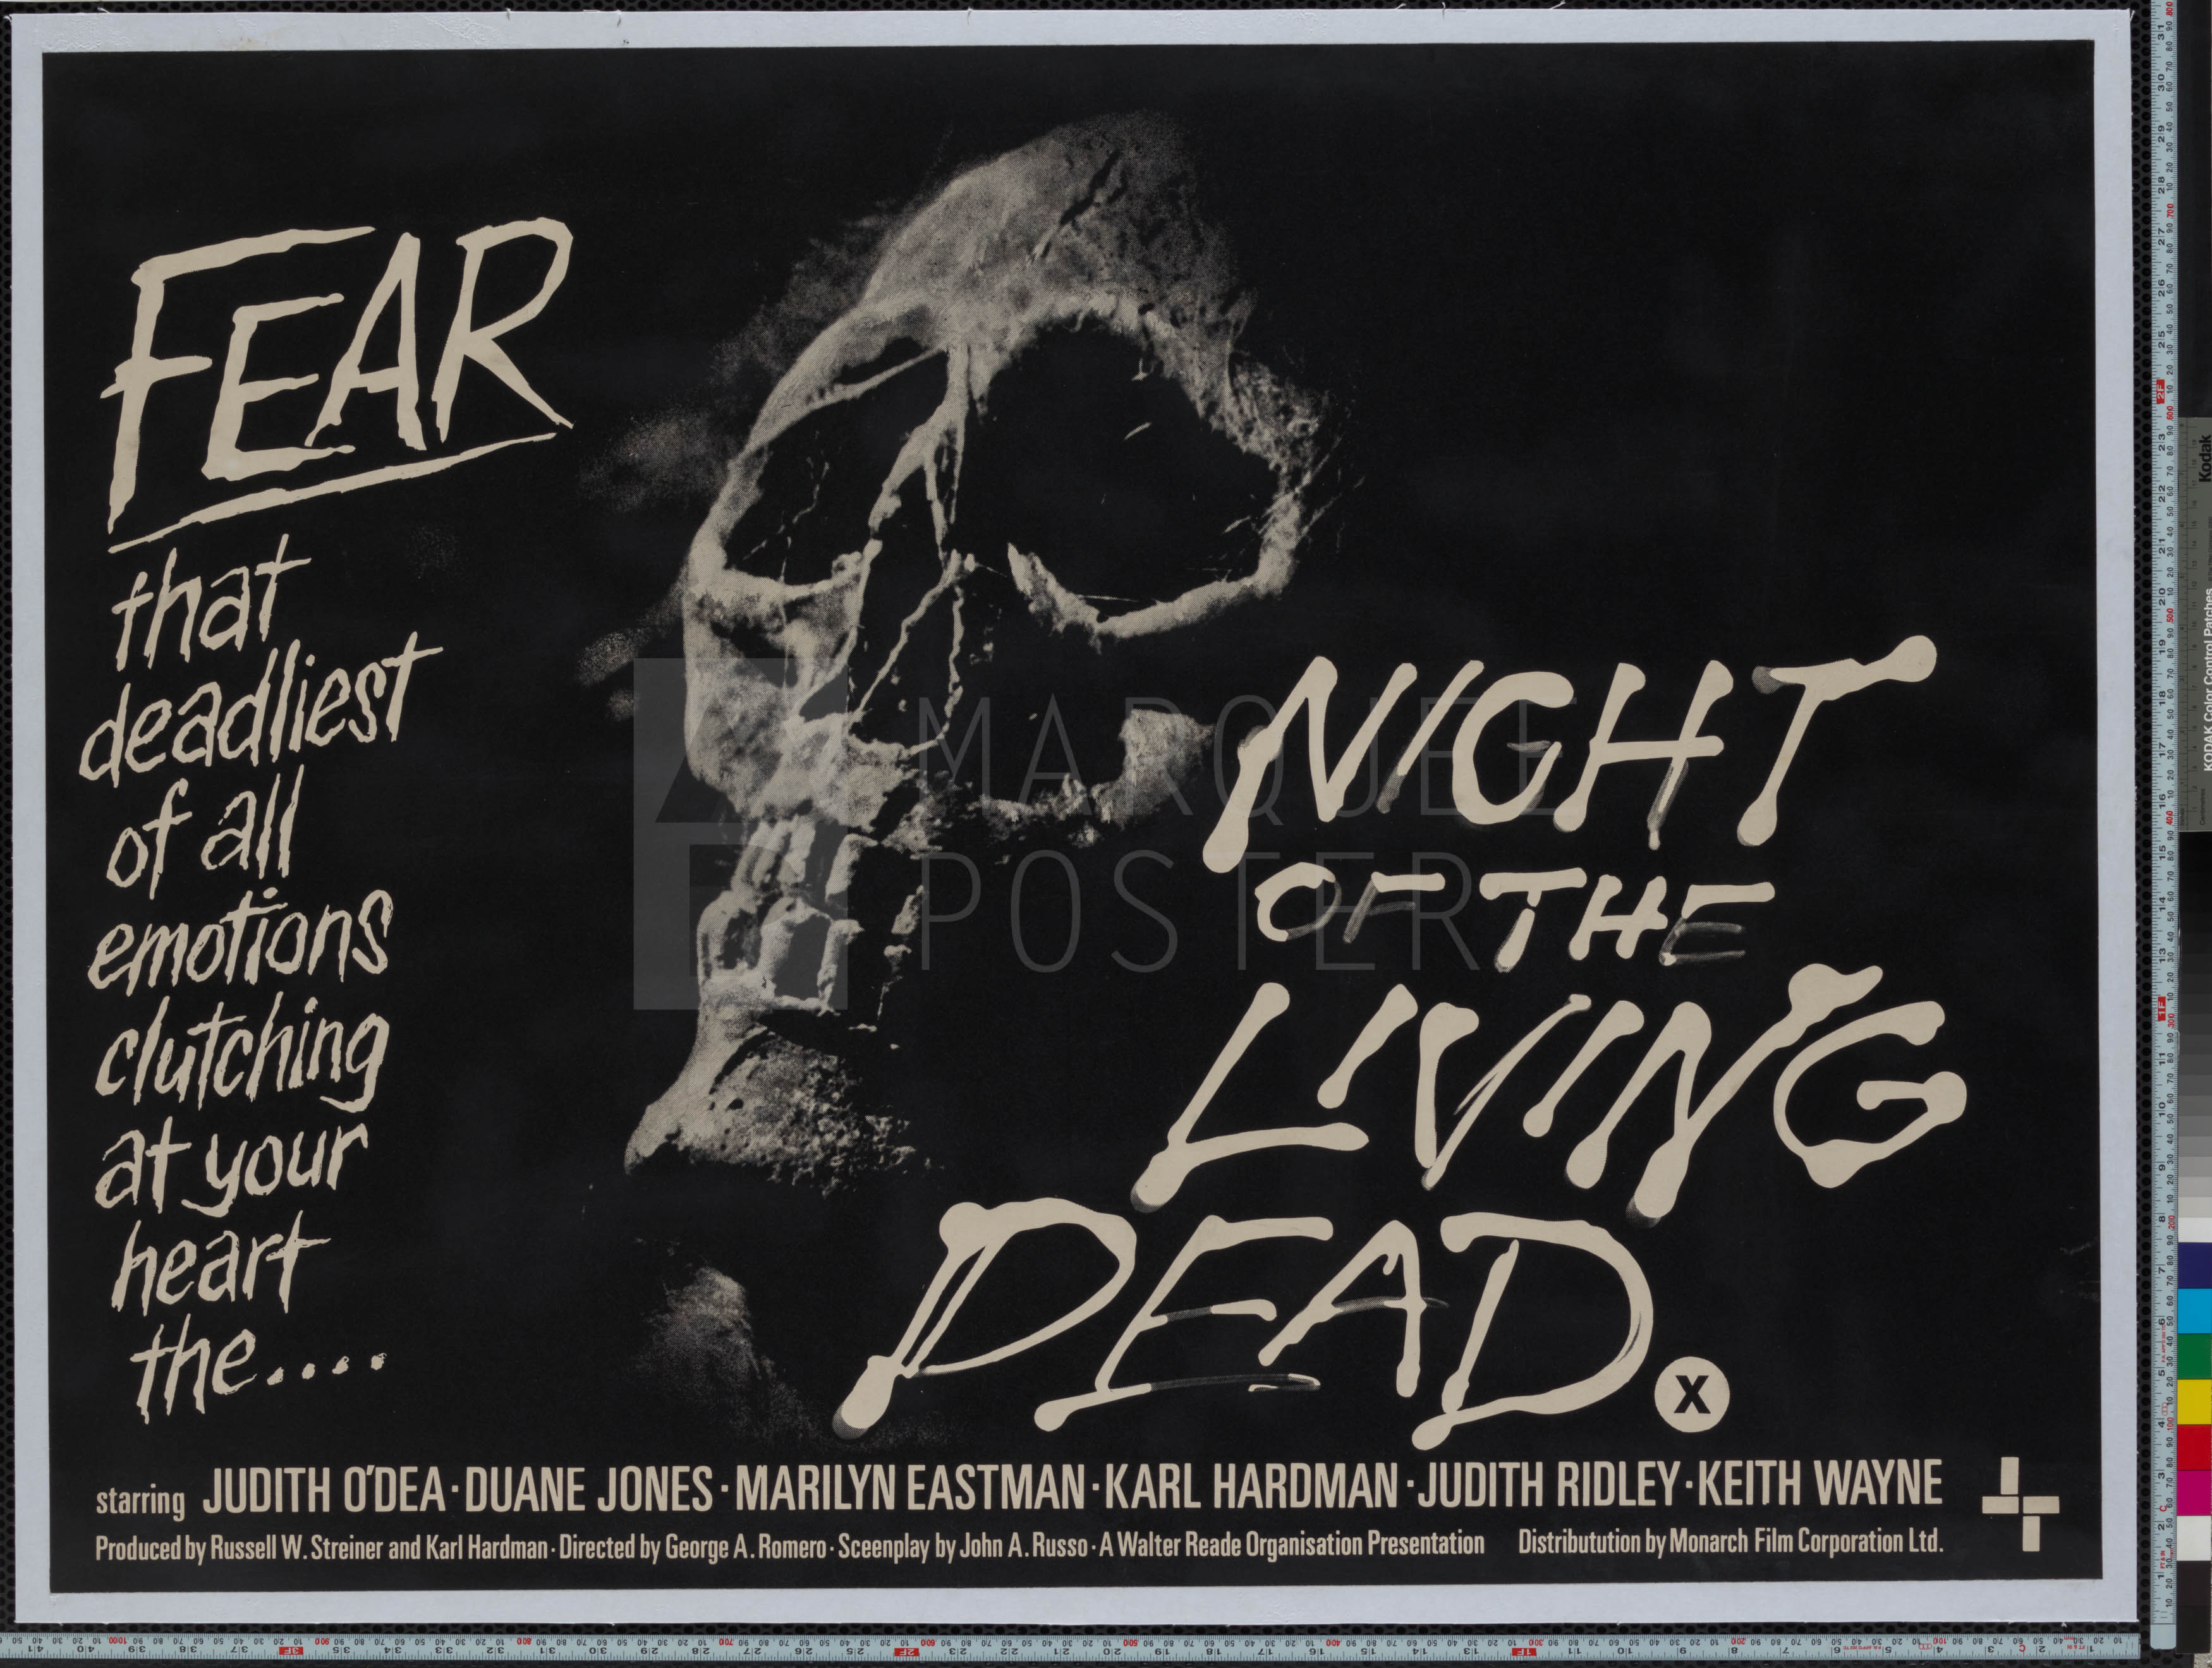 39-night-of-the-living-dead-uk-quad-1968-02